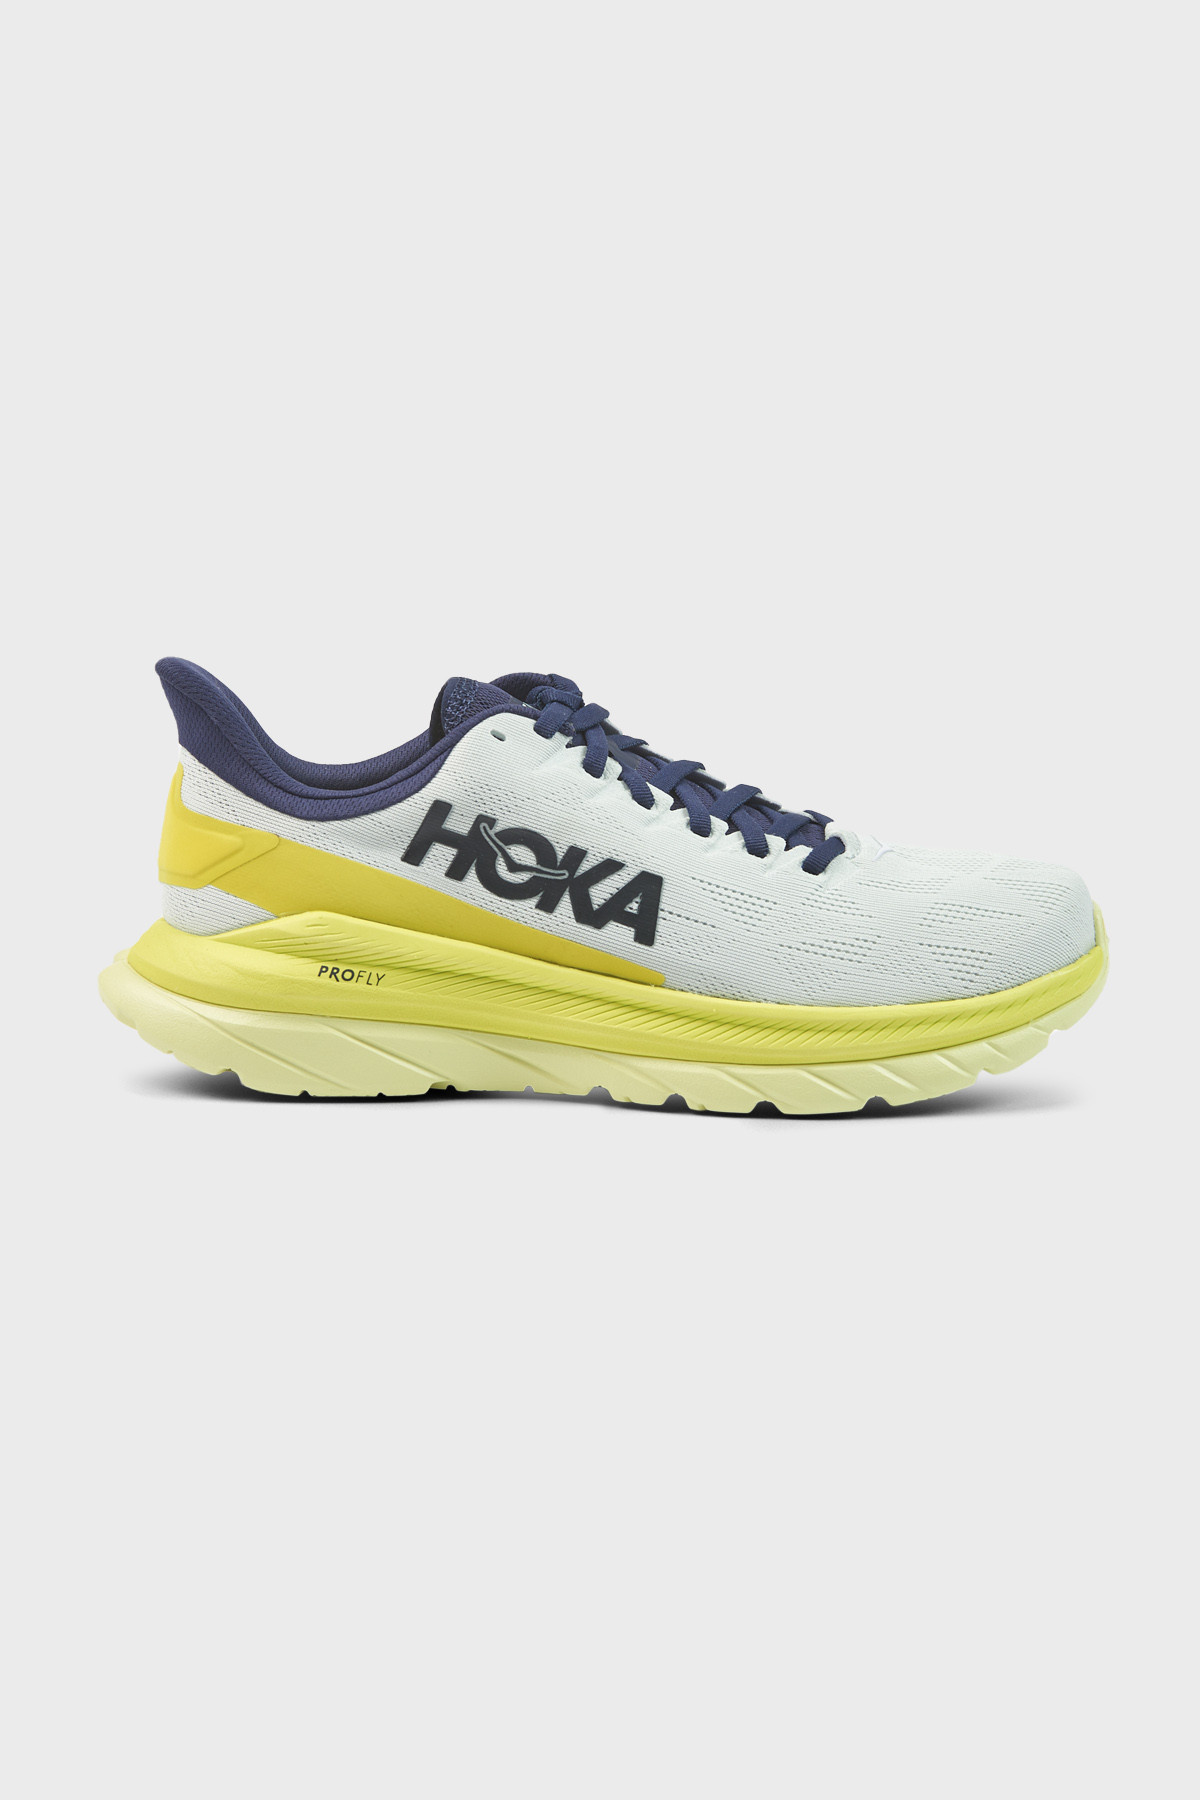 HOKA - MACH 4 - BLUE FLOWER CITRUS